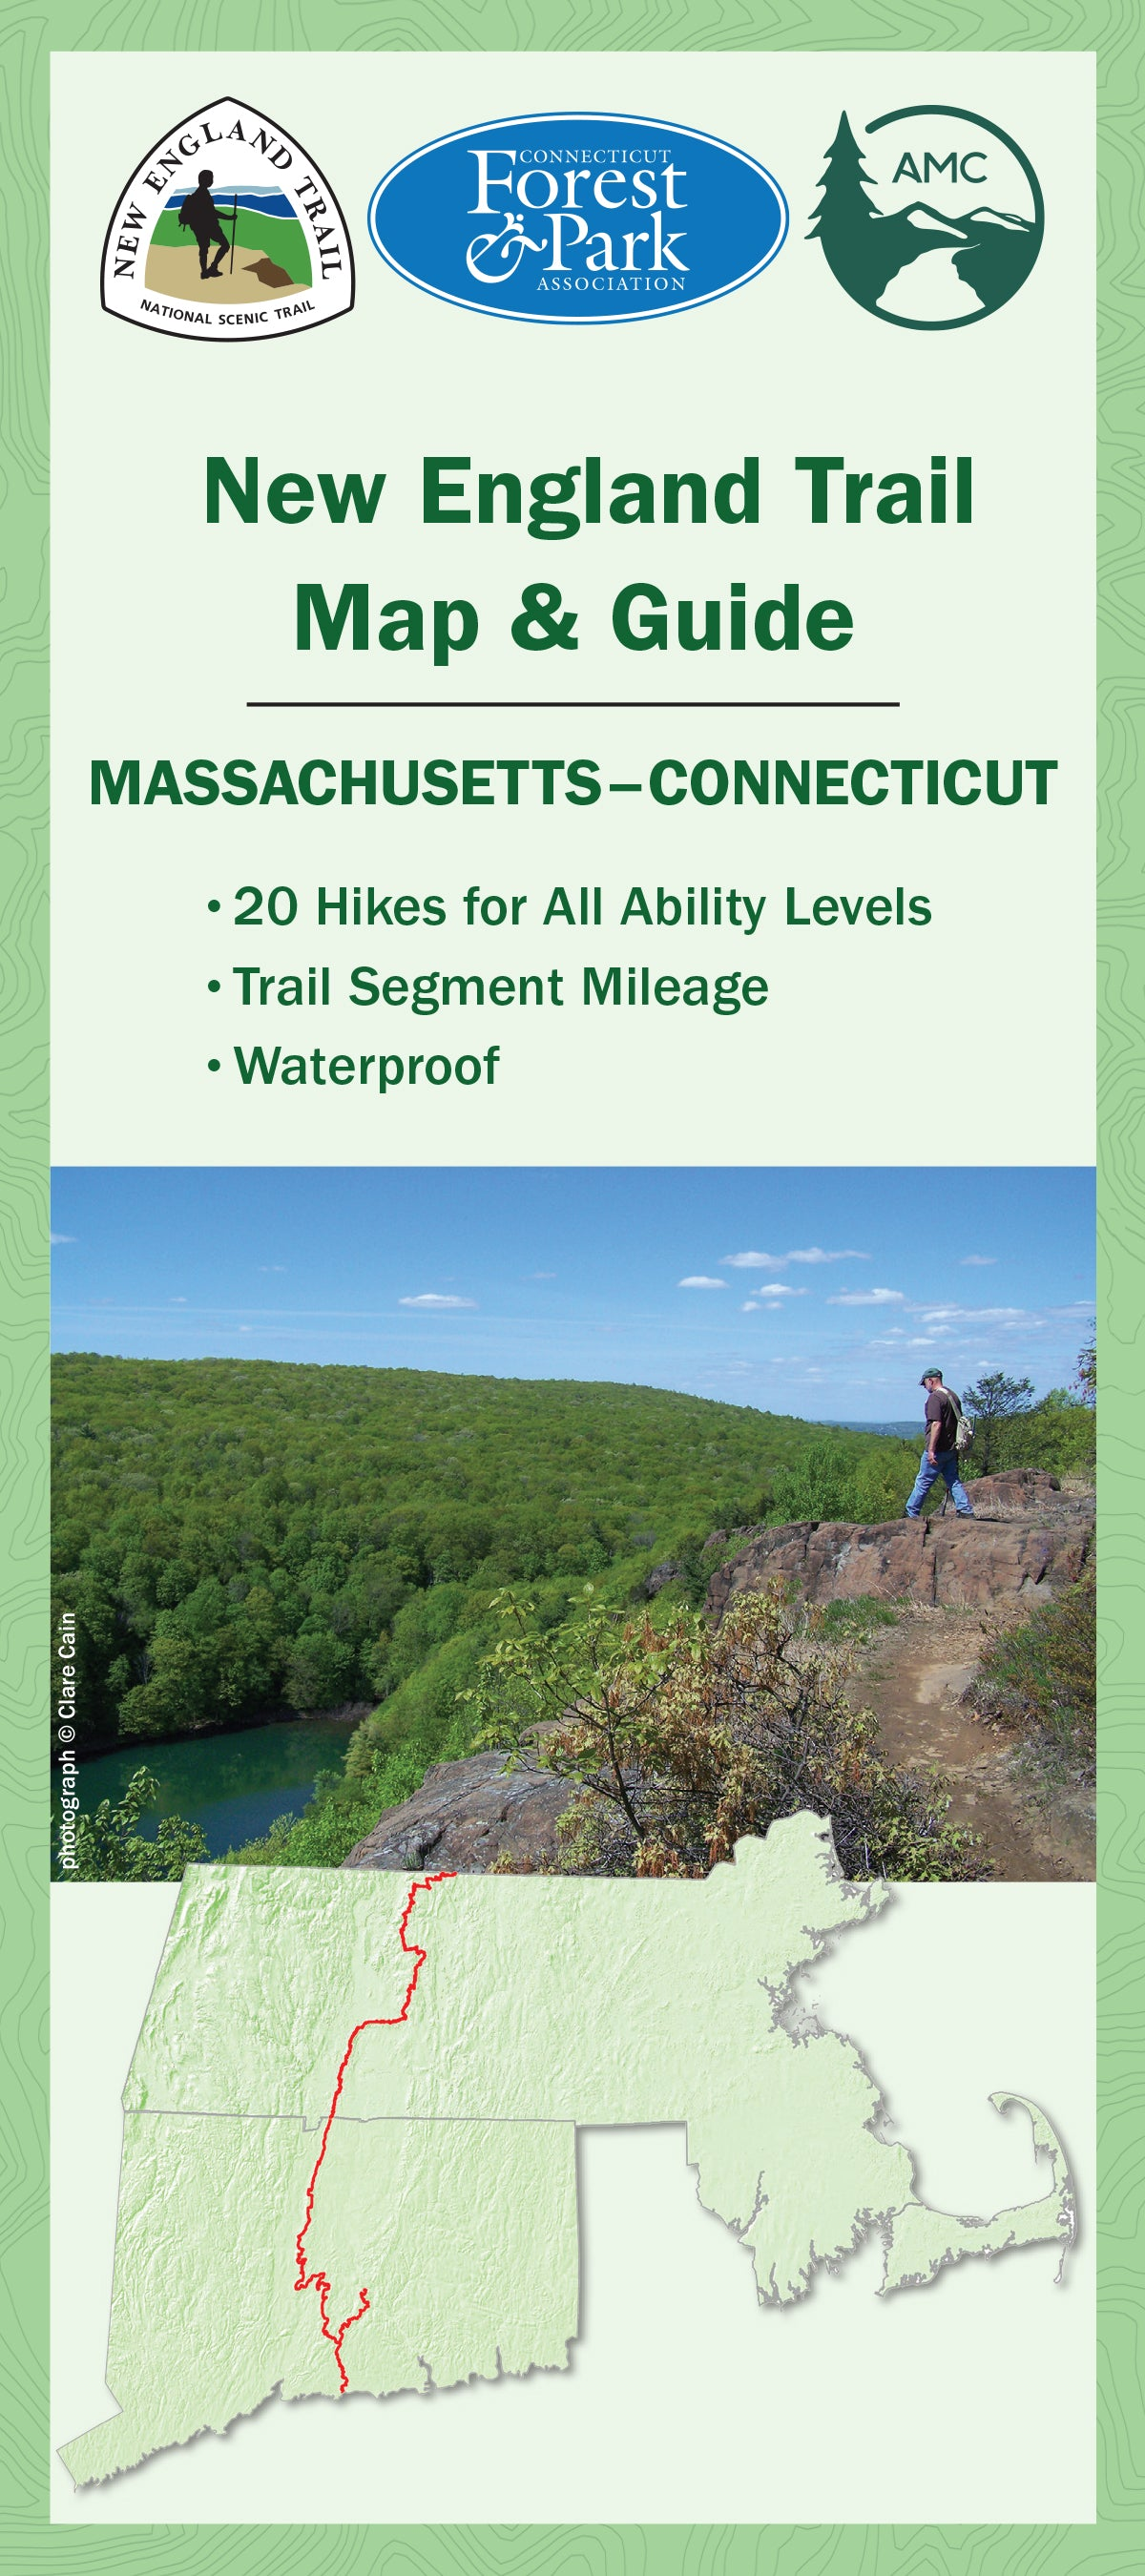 New England Trail Map & Guide